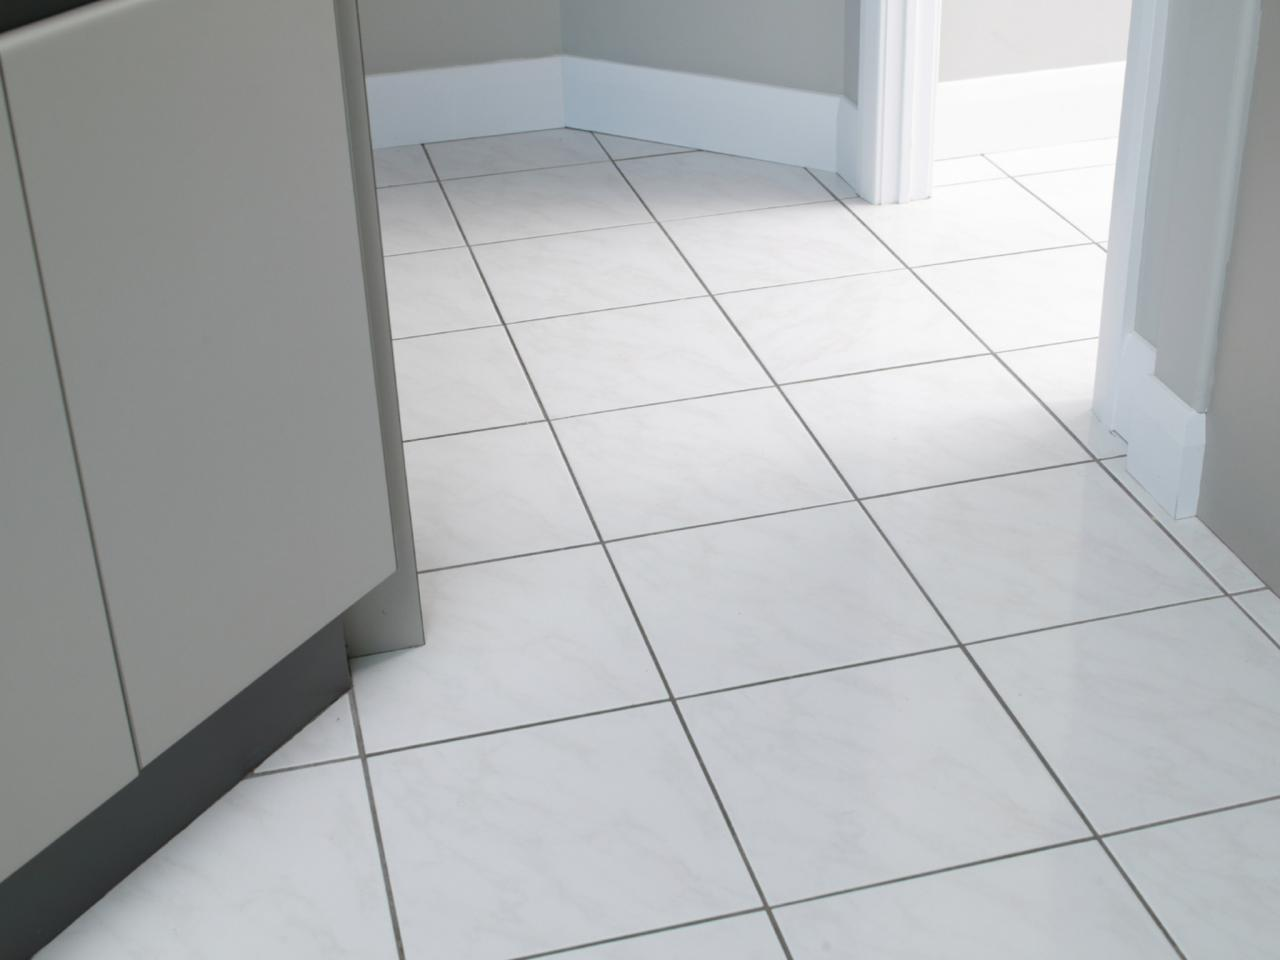 How to clean ceramic tile floors diy related to ceramic tile cleaning floors dailygadgetfo Images